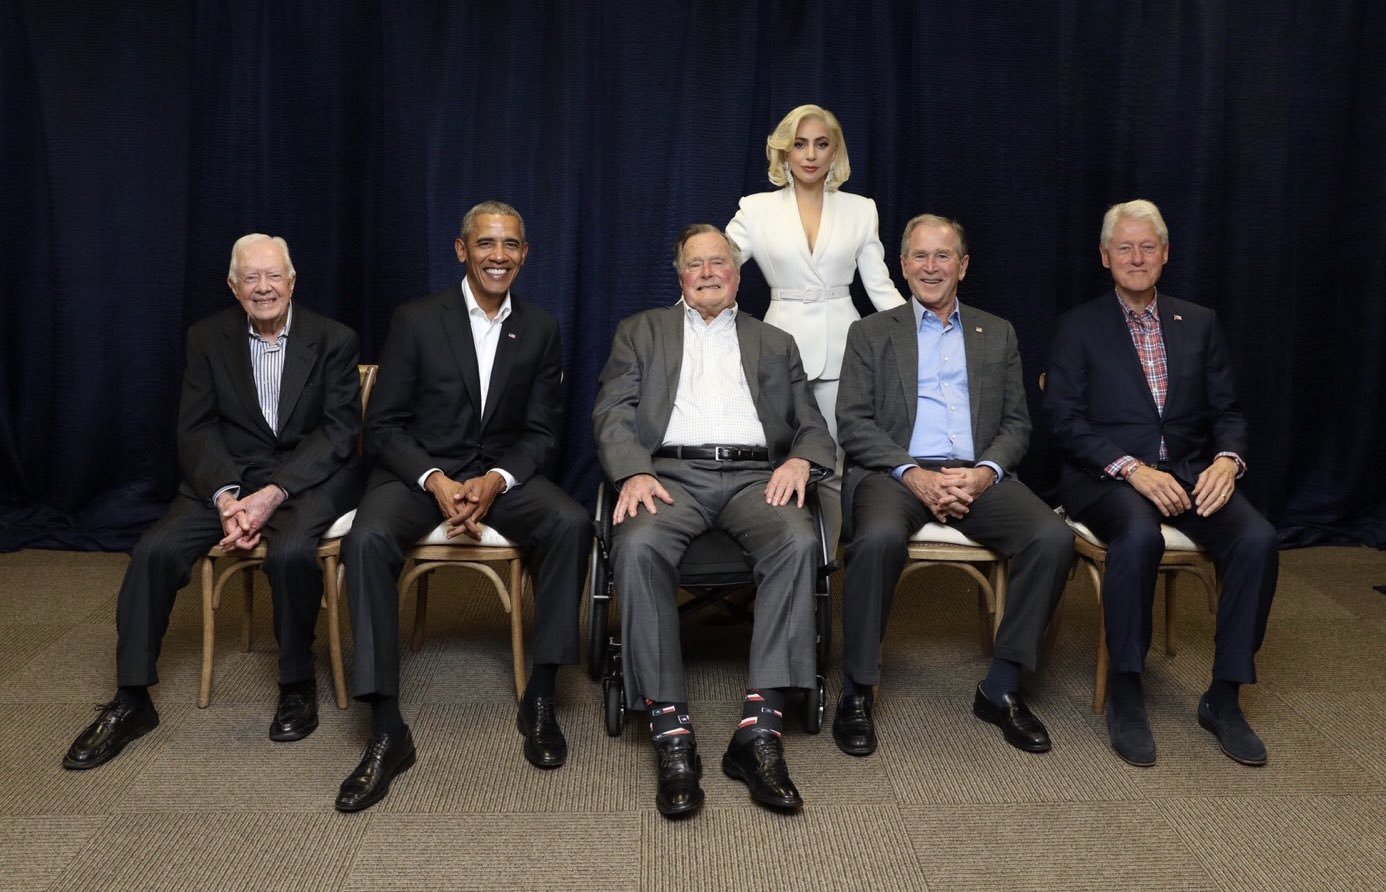 Photo of Lady Gaga and five living former presidents goes viral https://t.co/HiHixF6Ukw https://t.co/eyC8ZWmXch